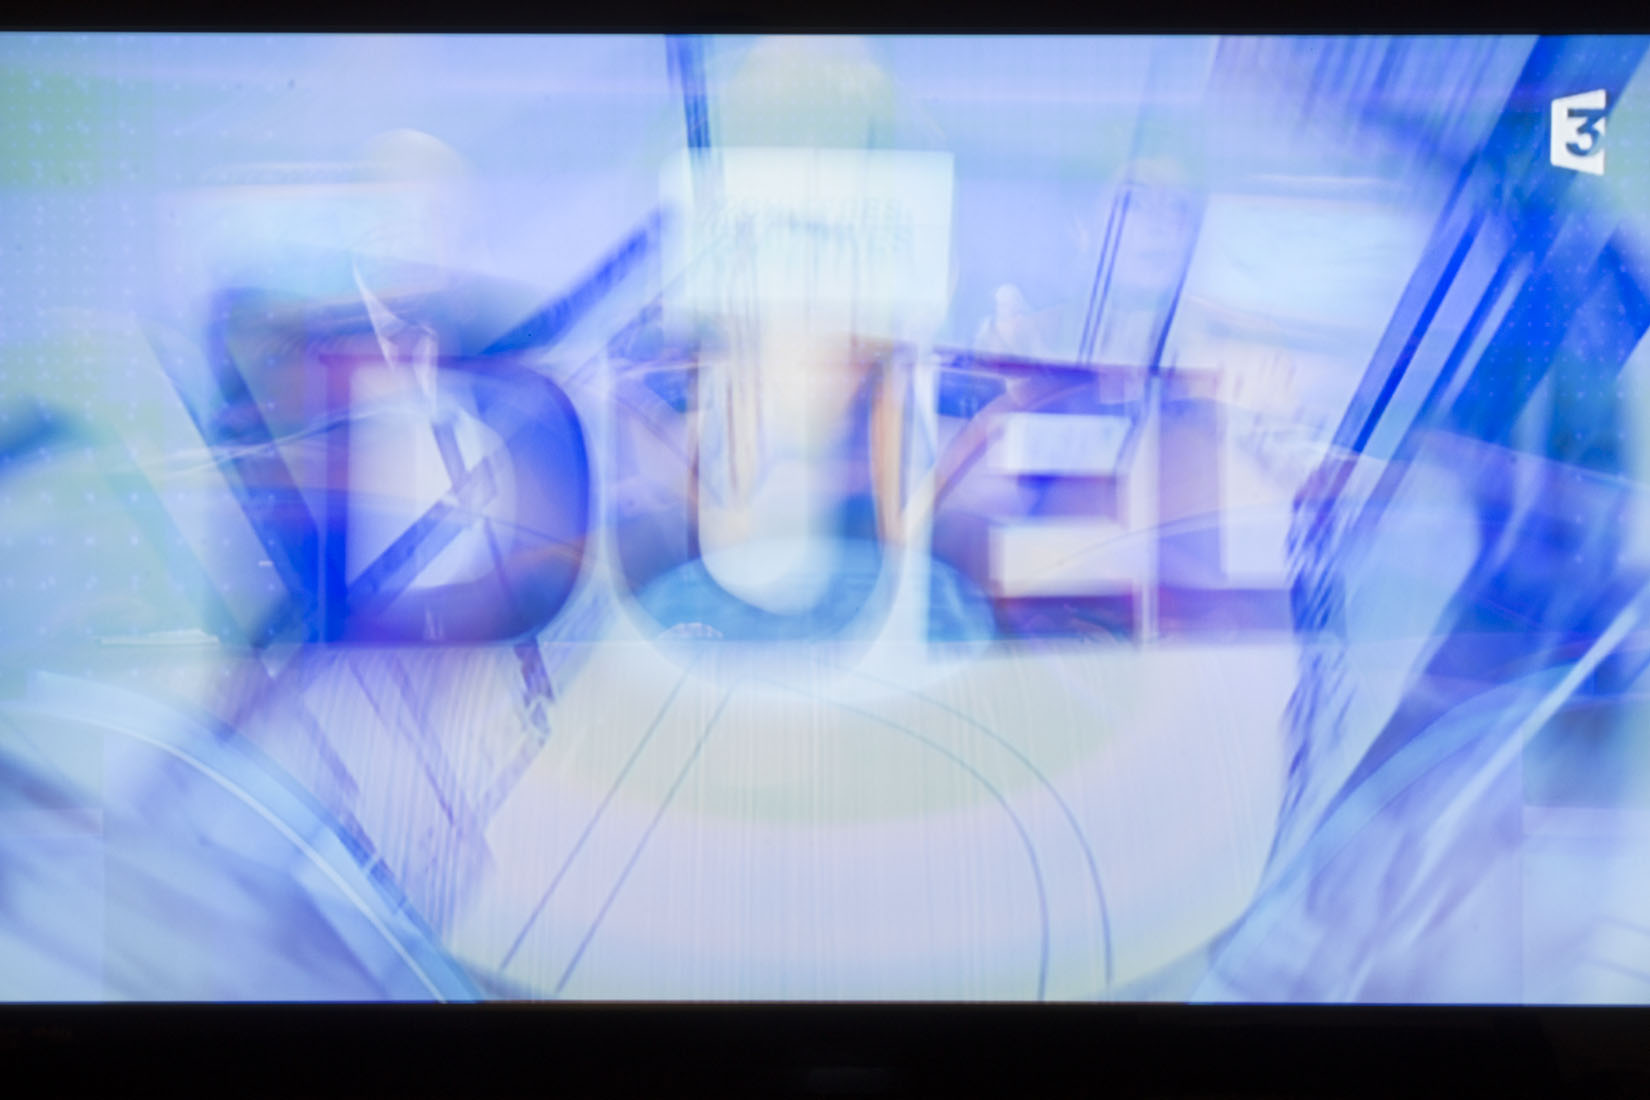 Television, France 3, Duel, Typeface, overlay